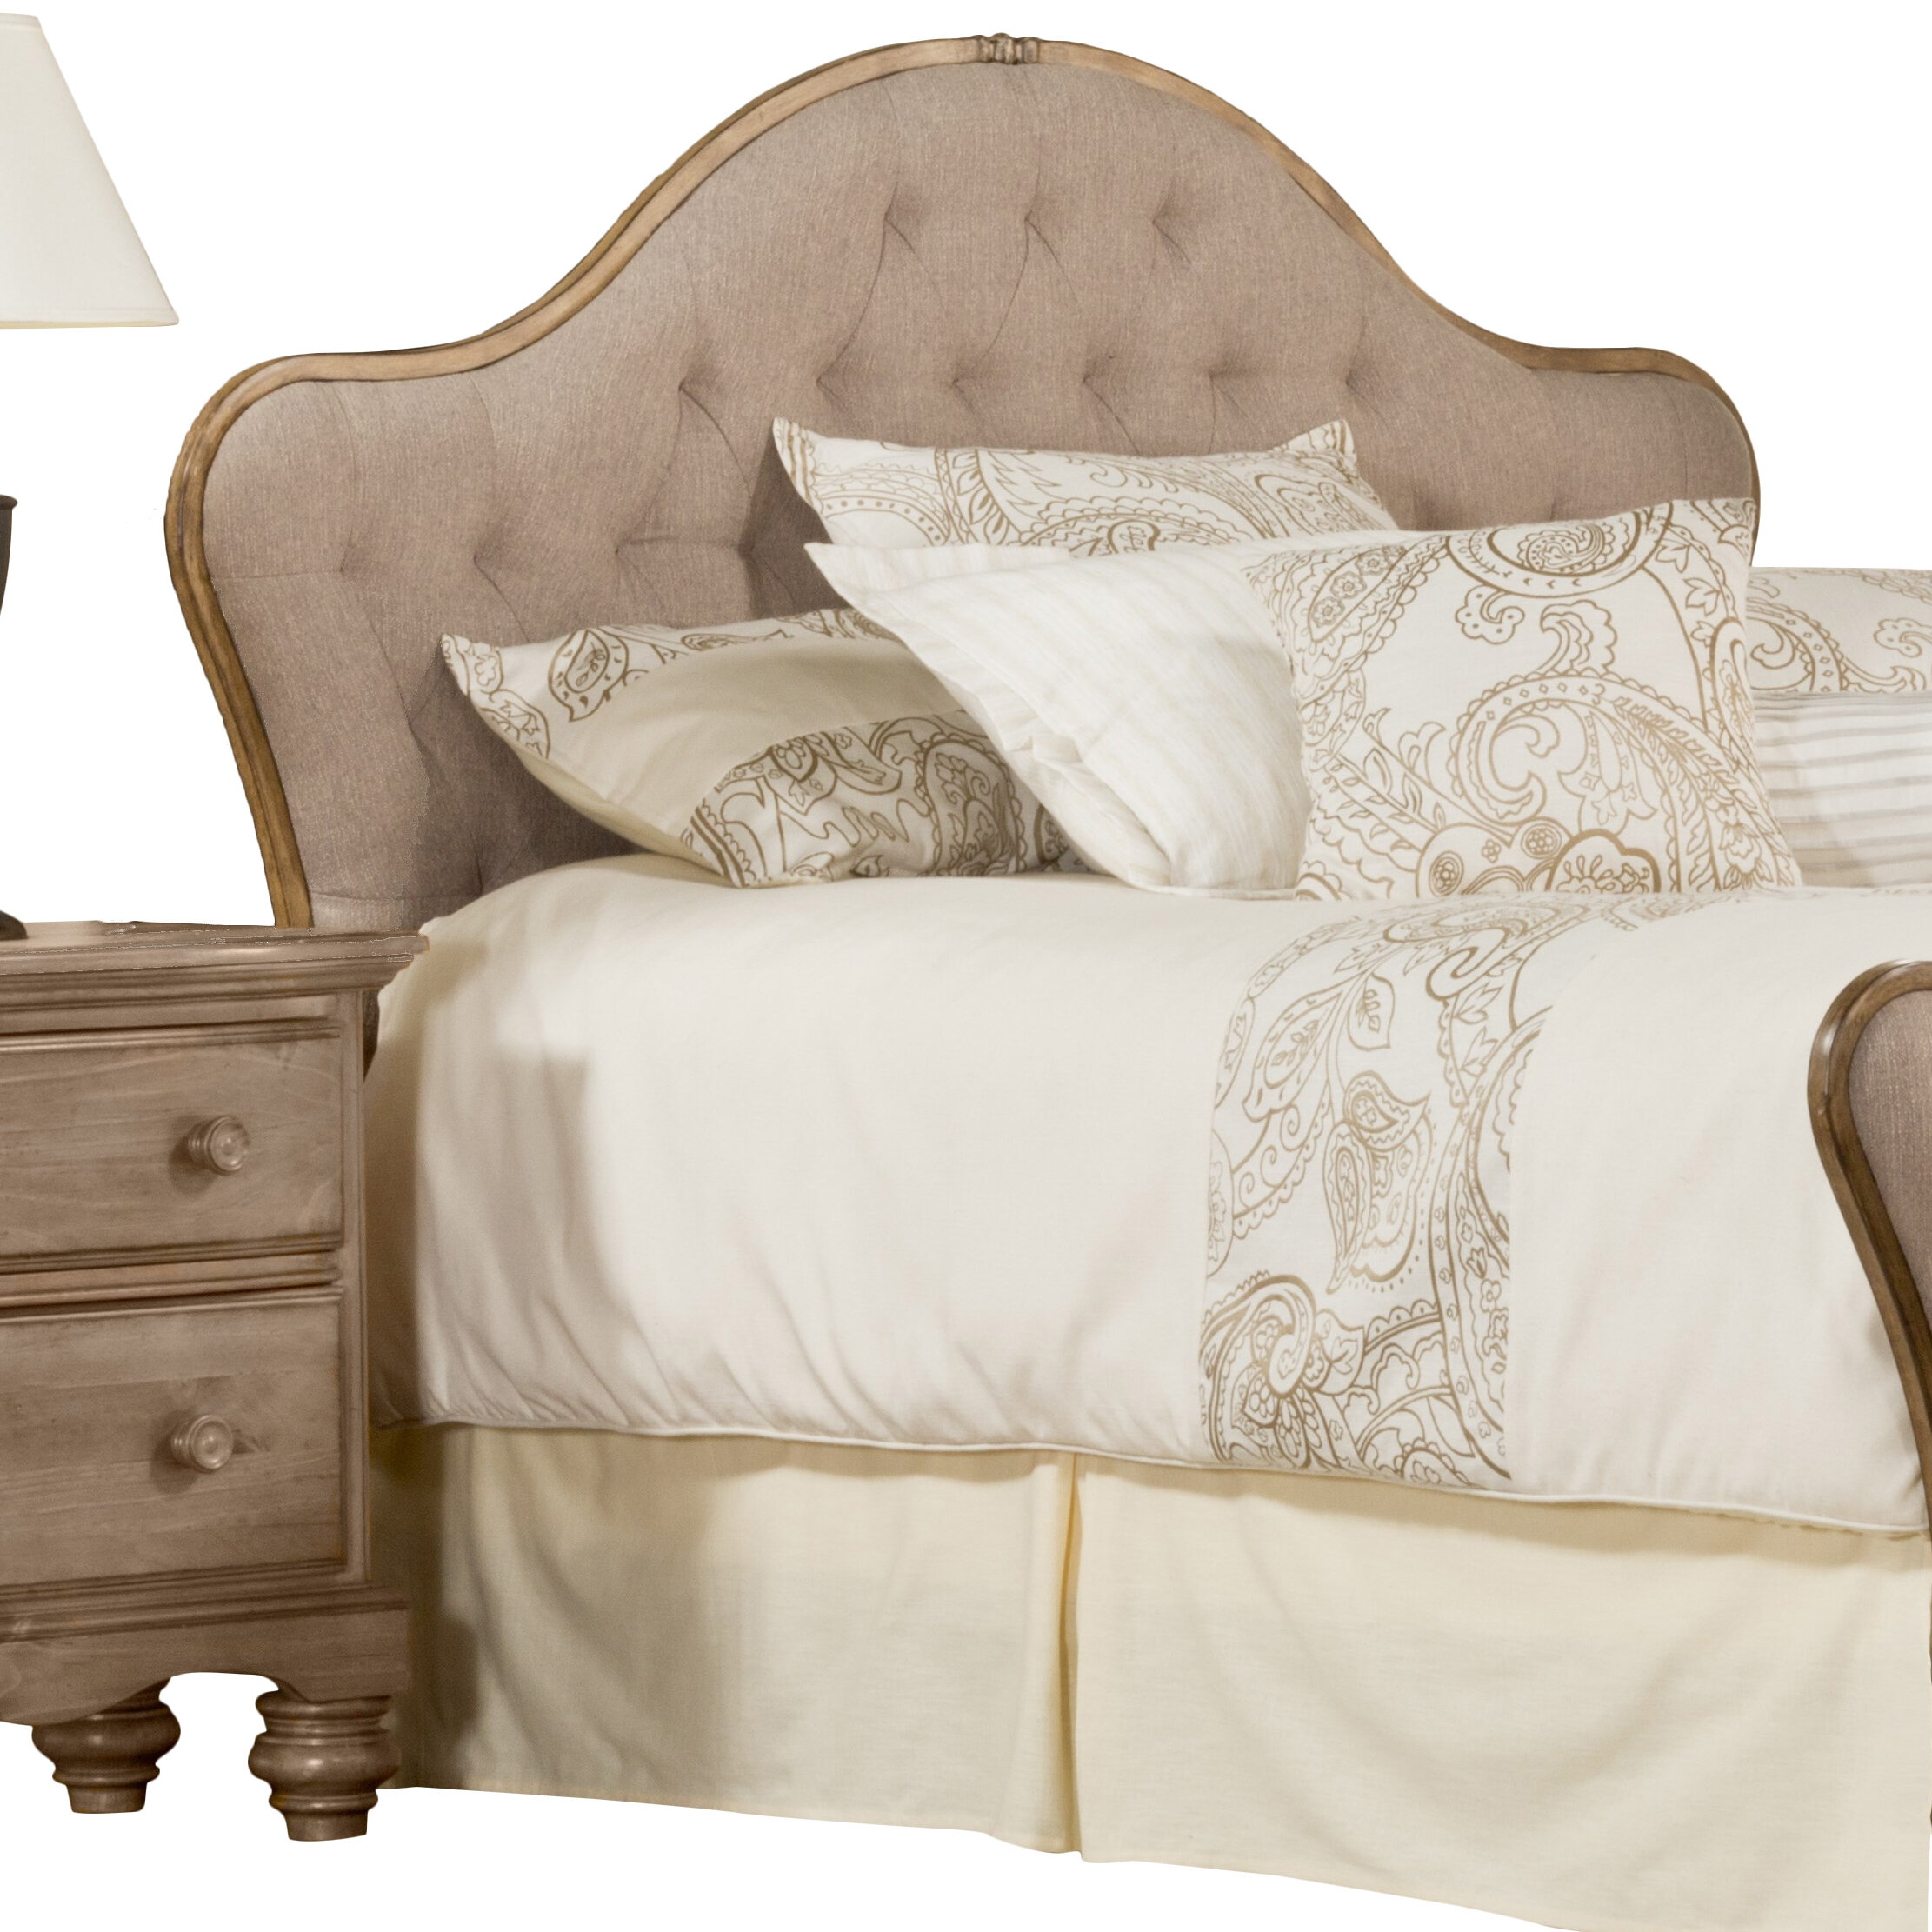 pinterest furniture country search headboard google french pin